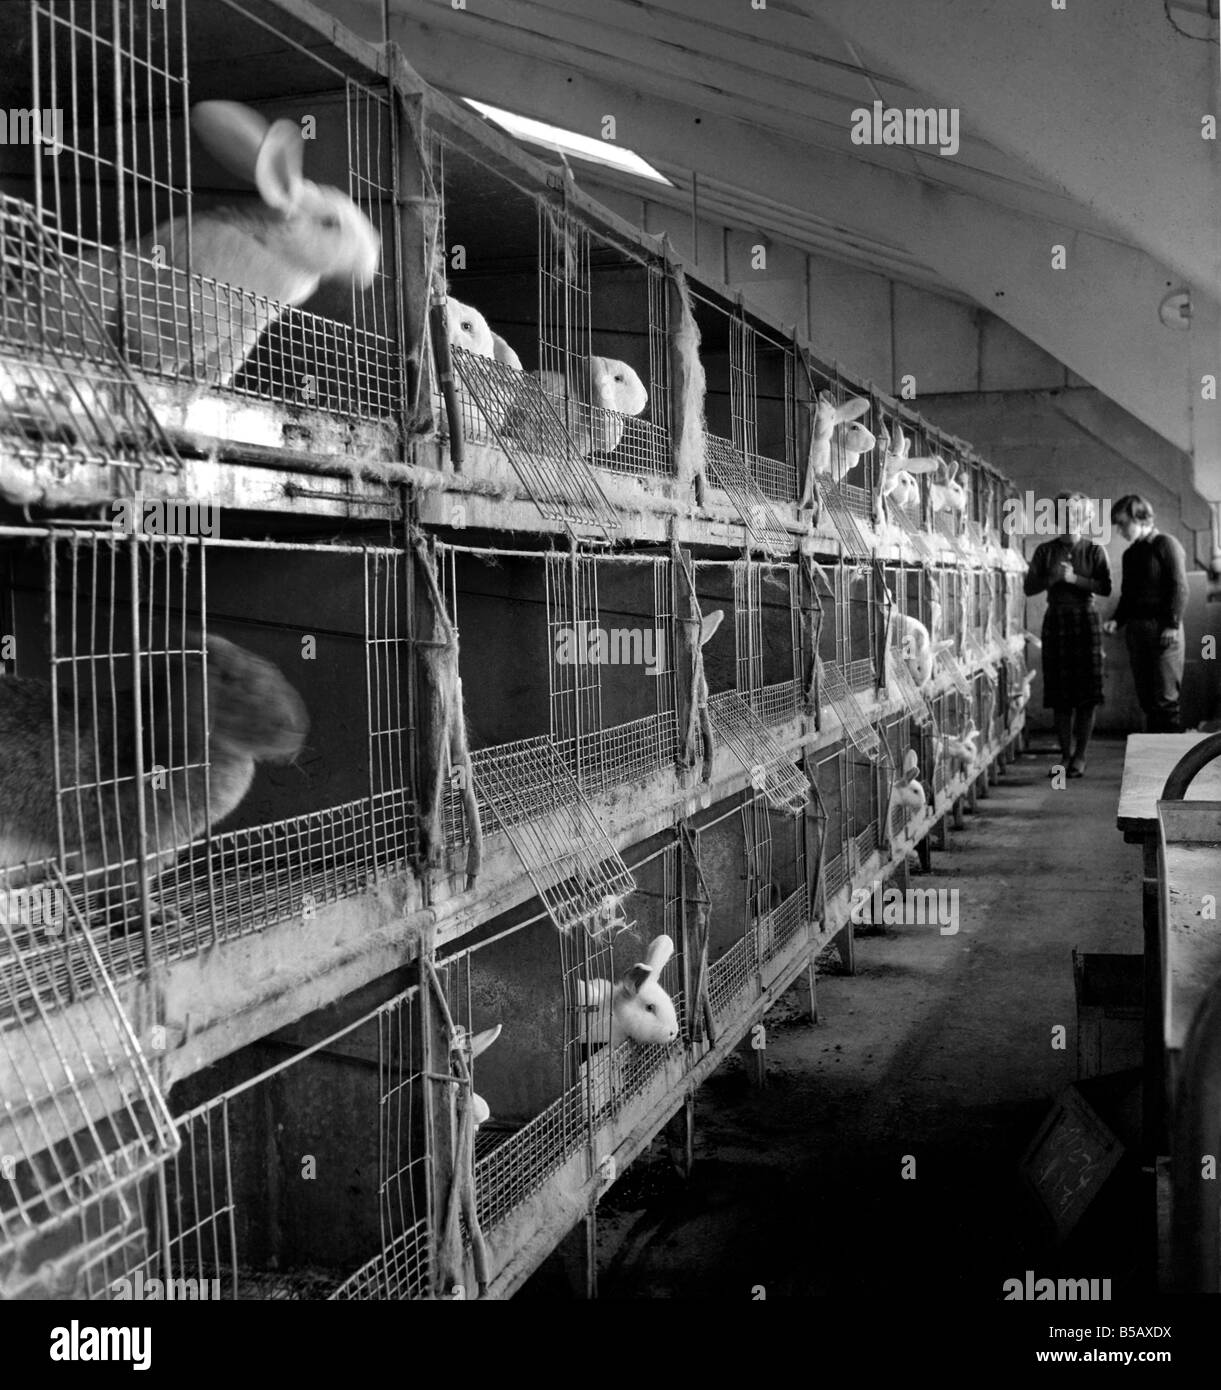 Rabbits bred in cage at a Rabbit farm. 1962 A871-005 - Stock Image